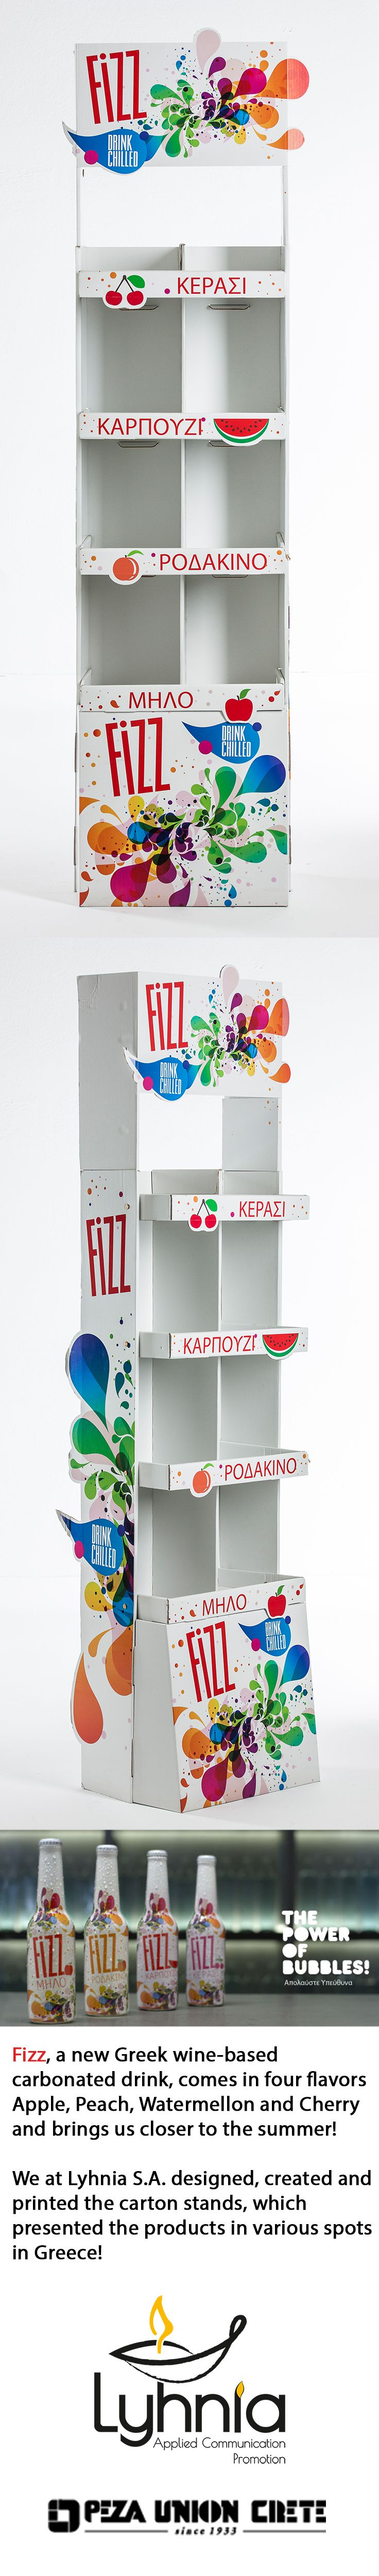 Fizz, a new Greek wine-based carbonated drink, comes in four flavors Apple, Peach, Watermellon and Cherry and brings us closer to the summer! We at Lyhnia S.A. designed, created and printed the carton stands, which presented the products in various spots in Greece!